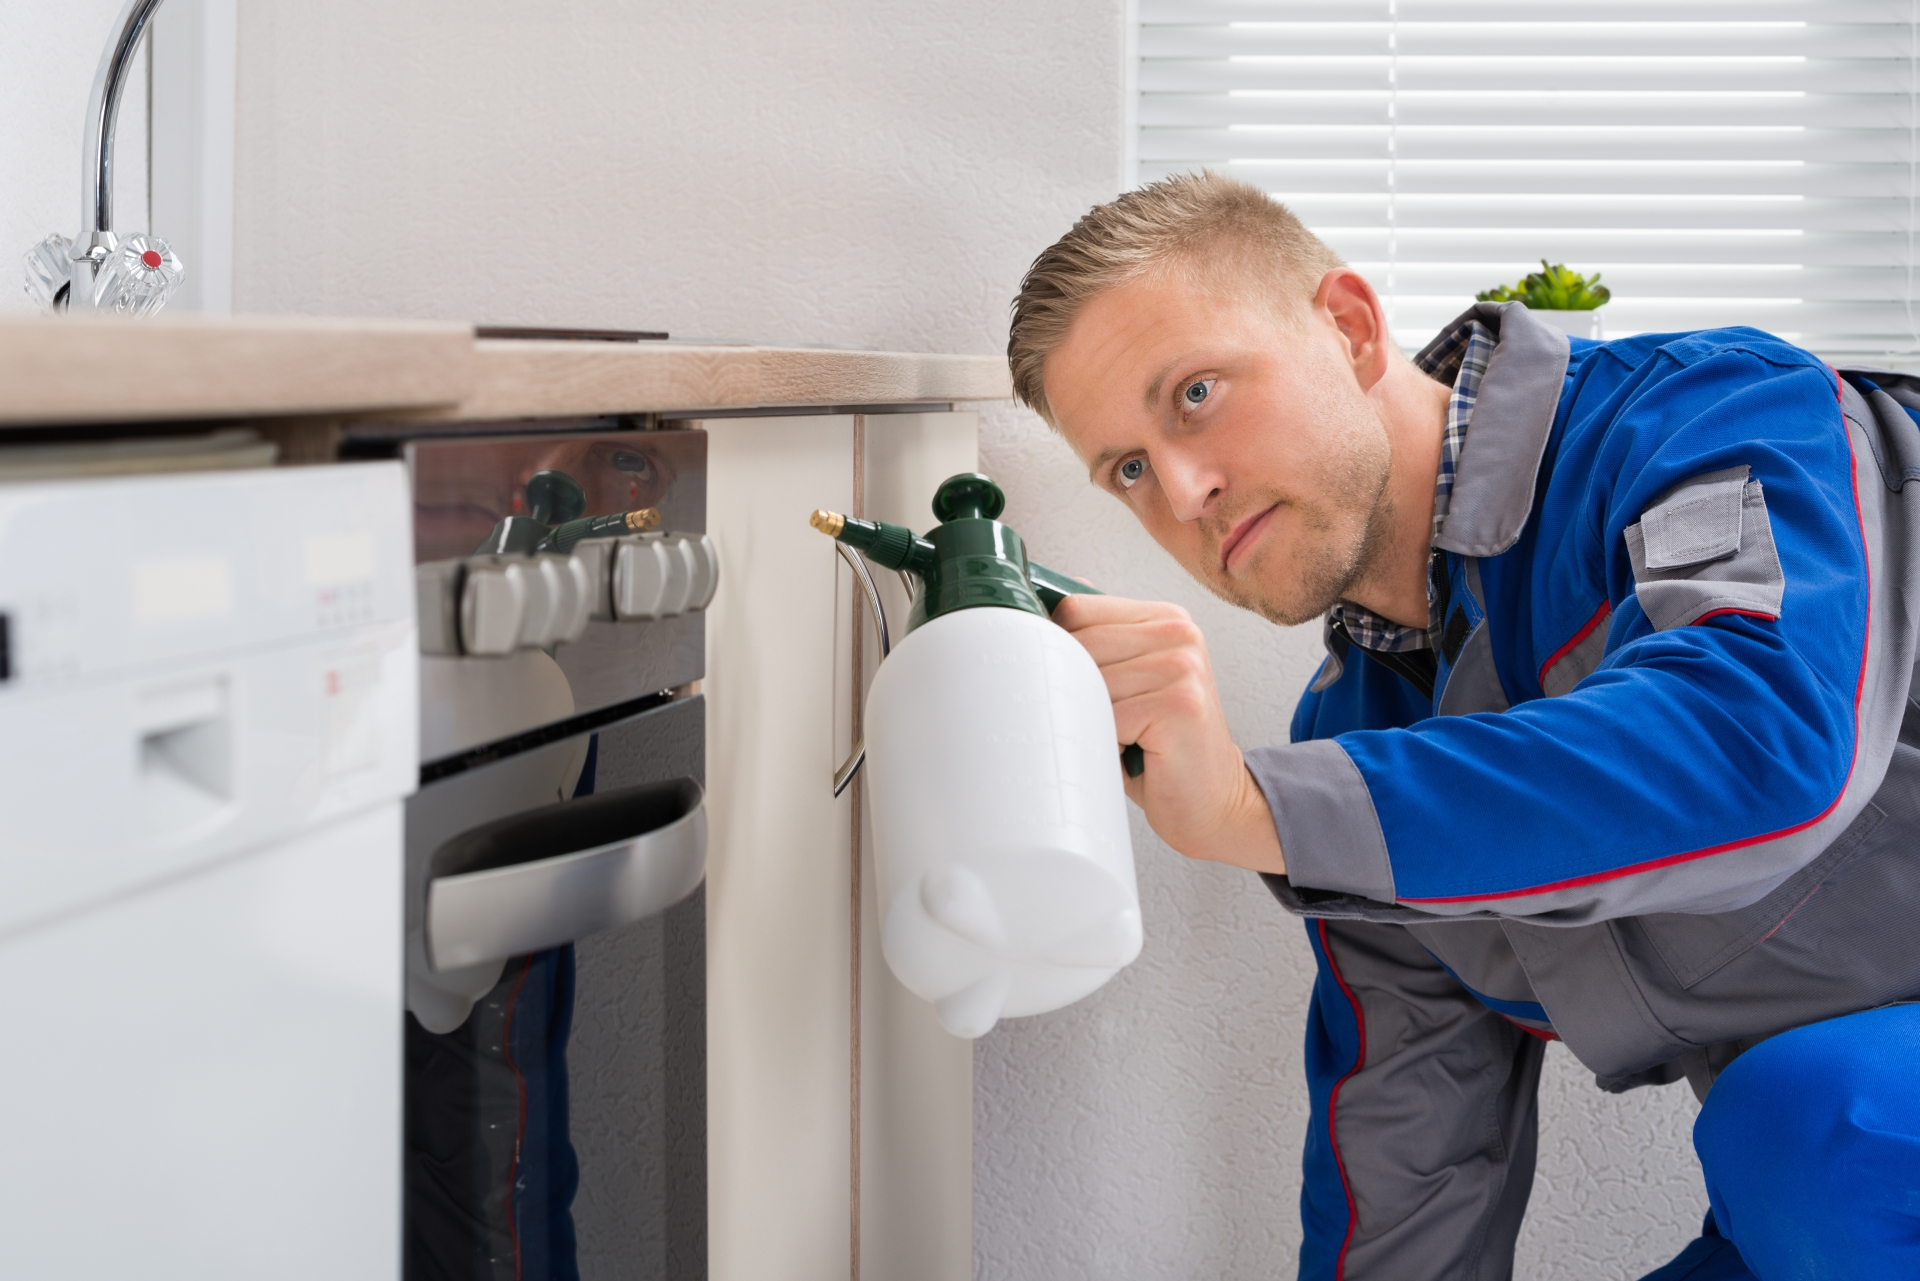 Pest Inspection, Pest Control in Walton-on-Thames, Hersham, KT12. Call Now 020 8166 9746